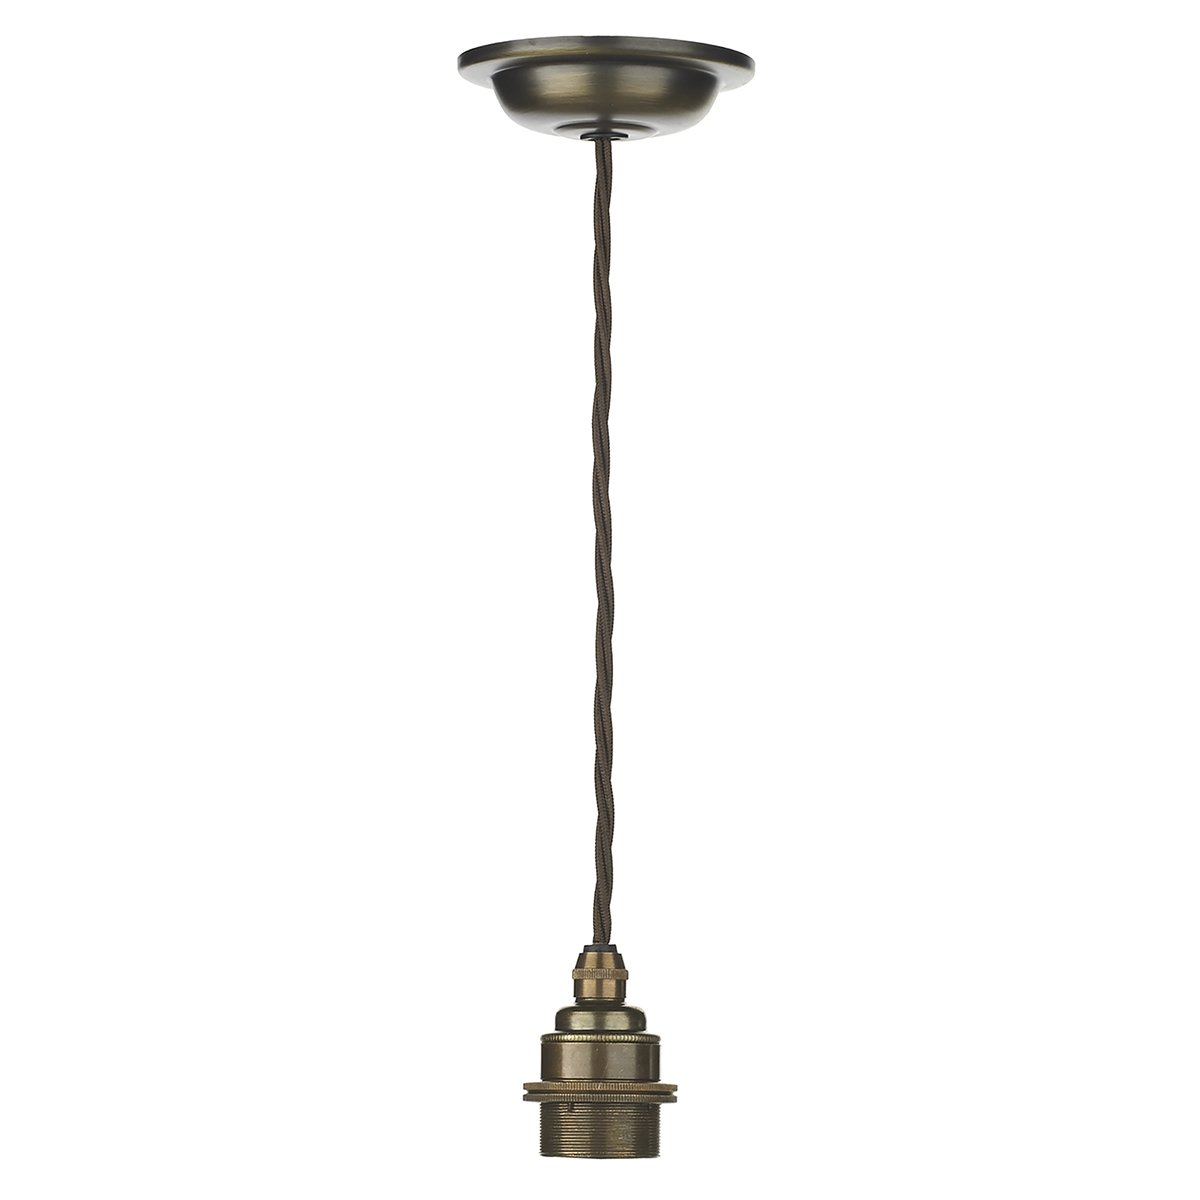 David Hunt Lighting DUX6575 Duxford 1 Light Suspention Unit in Antique Brass